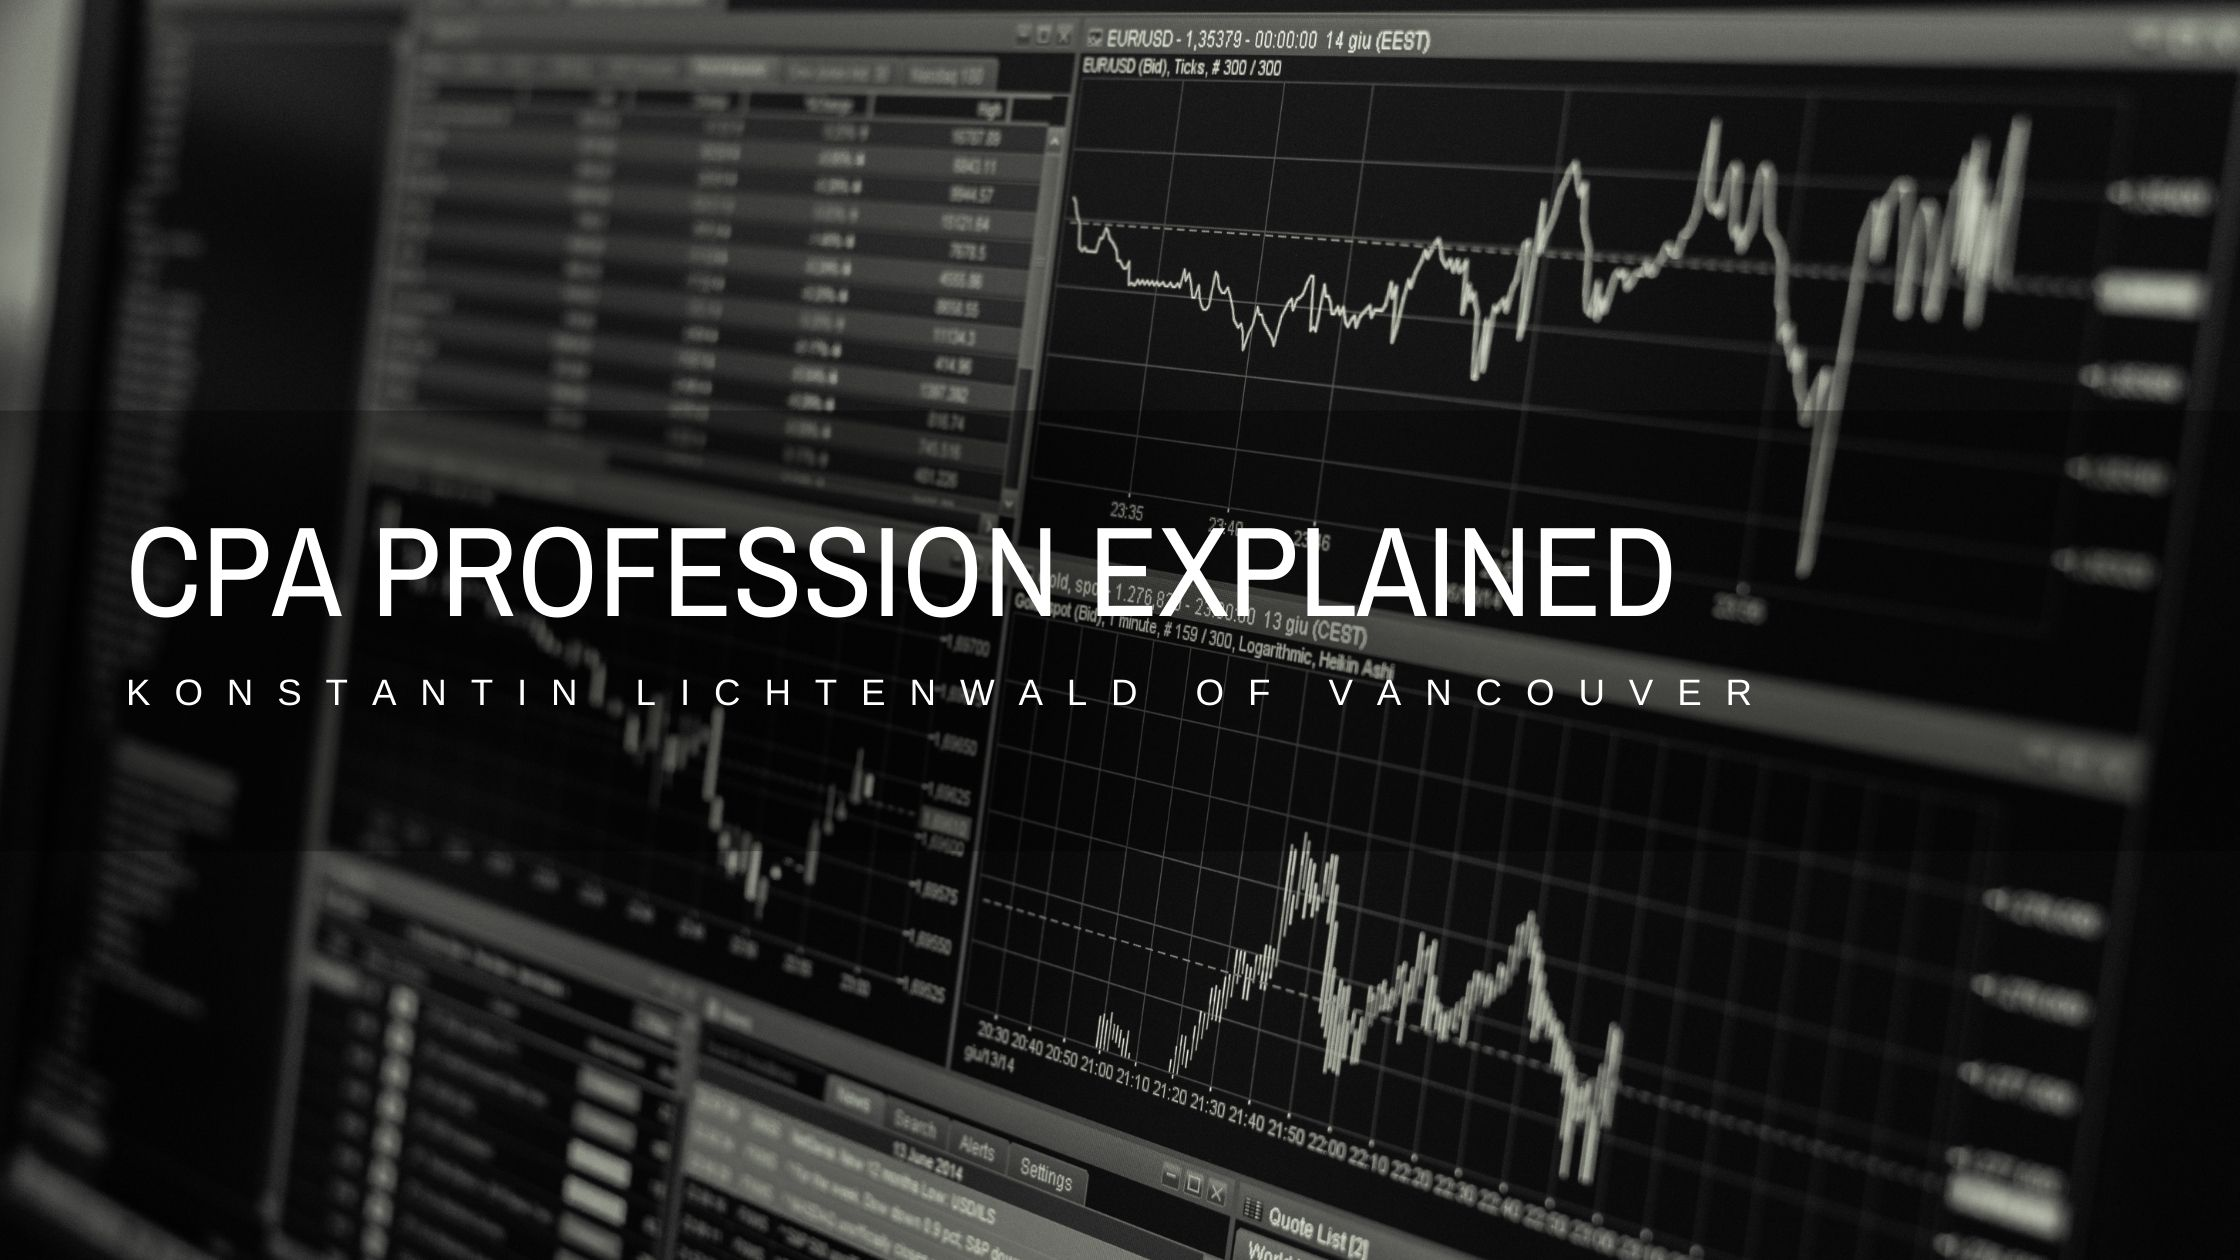 Konstantin Lichtenwald of Vancouver Explains The CPA Profession